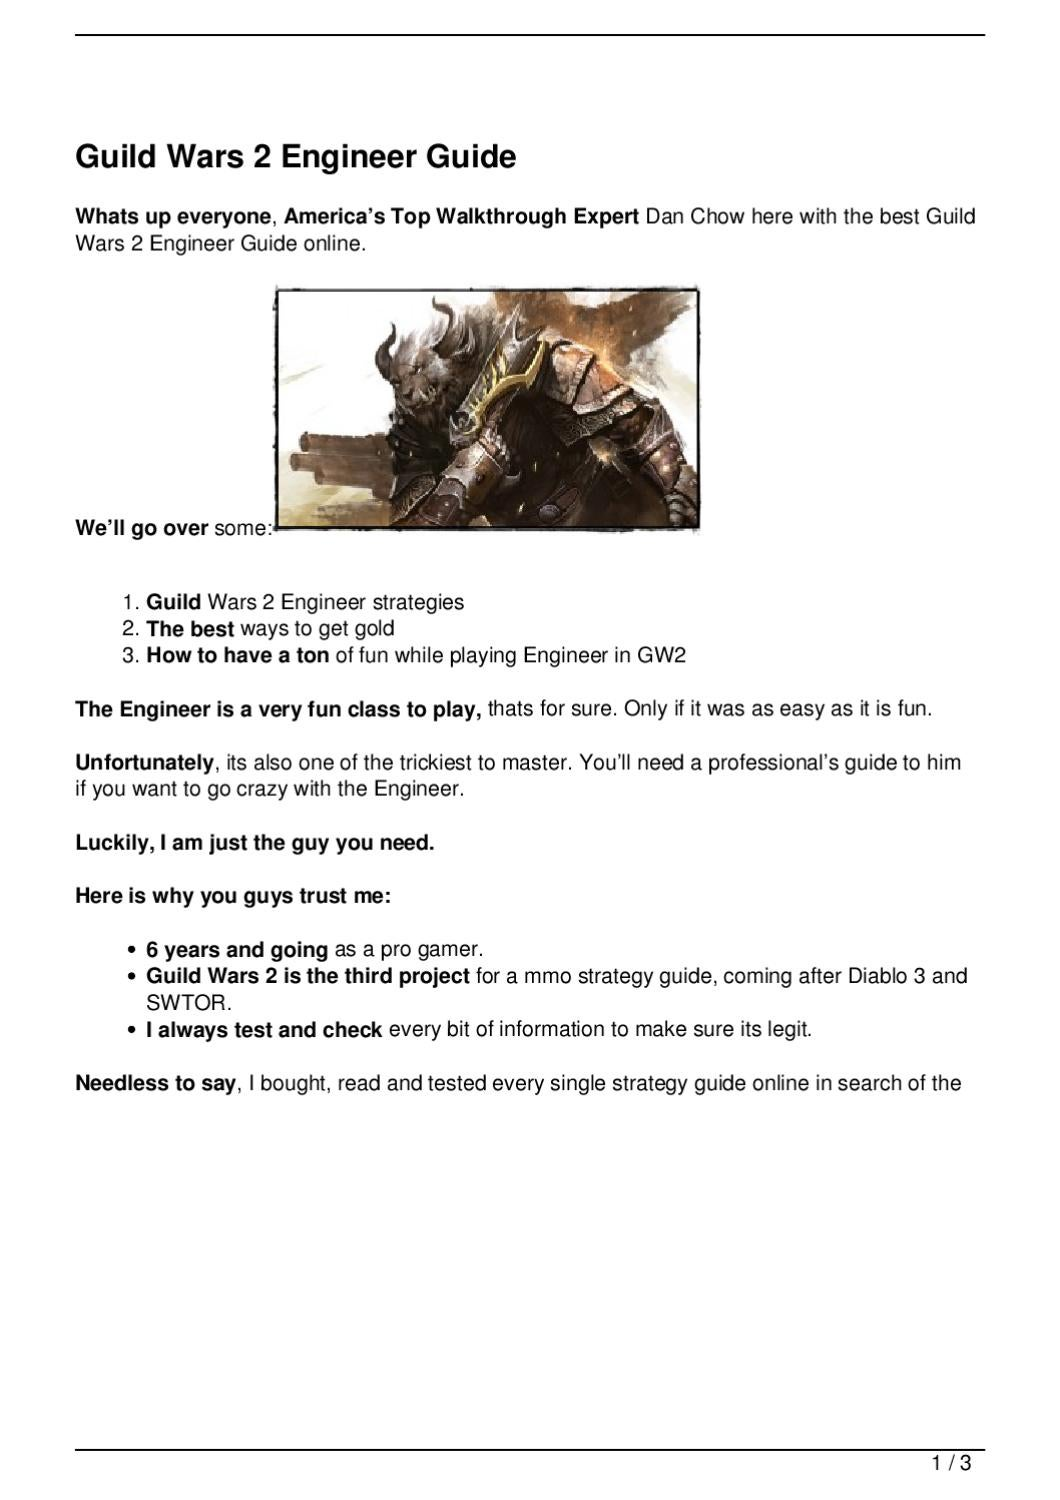 Guild Wars 2 Engineer Guide by Dan Chow - issuu